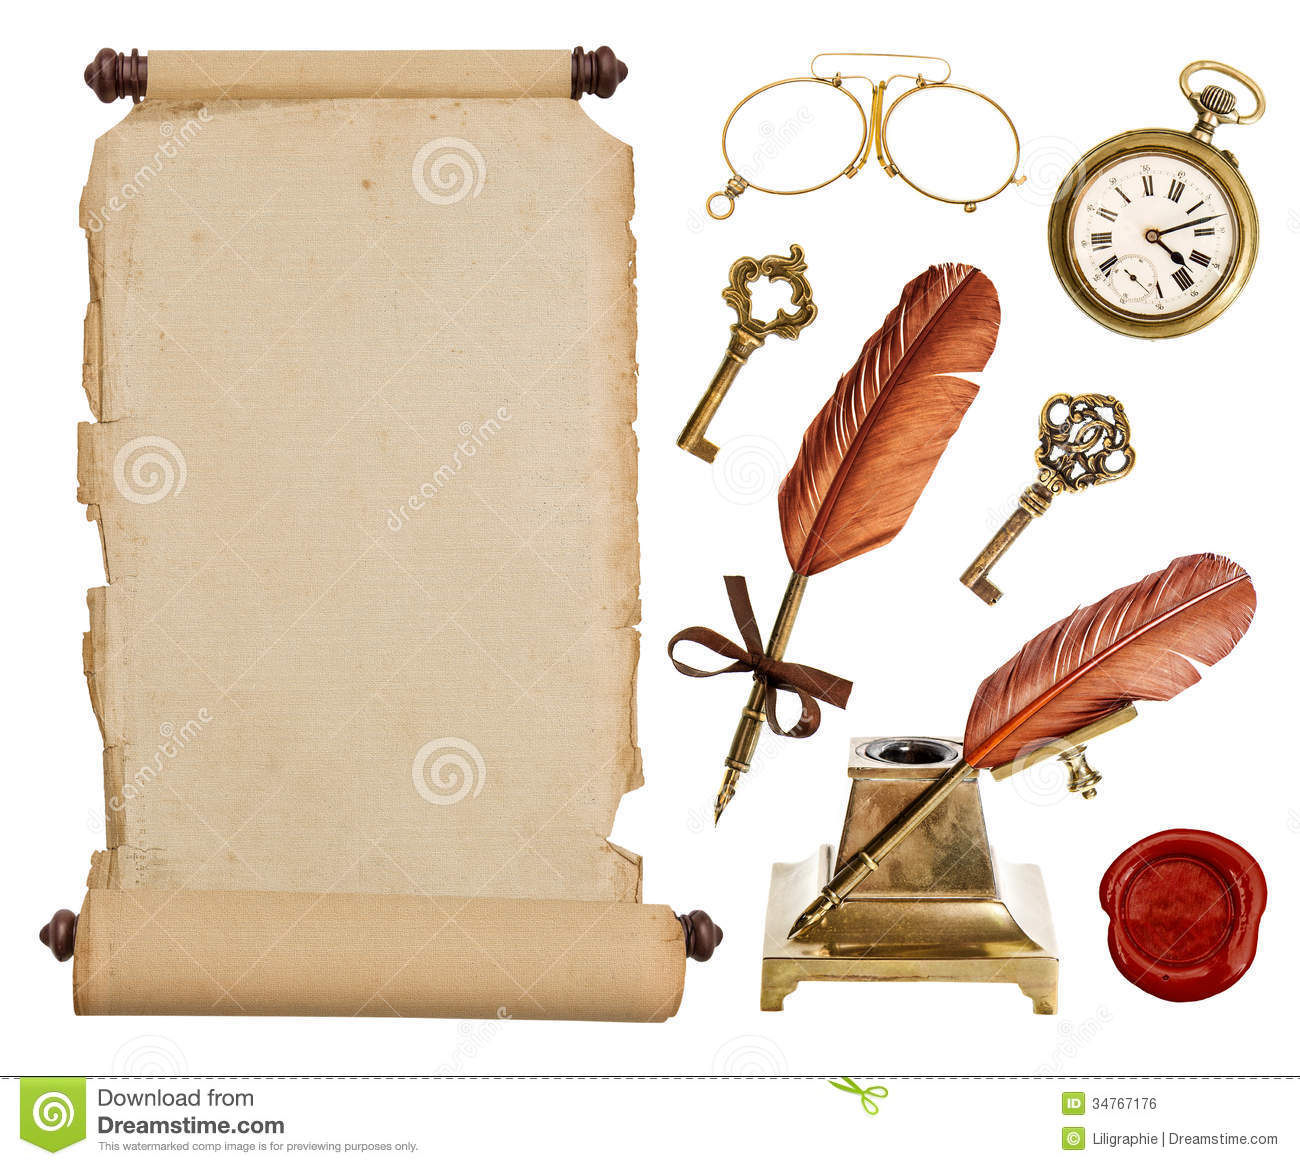 Antique Scrollimgs: Vintage Paper Scroll And Antique Accessories Stock Photo